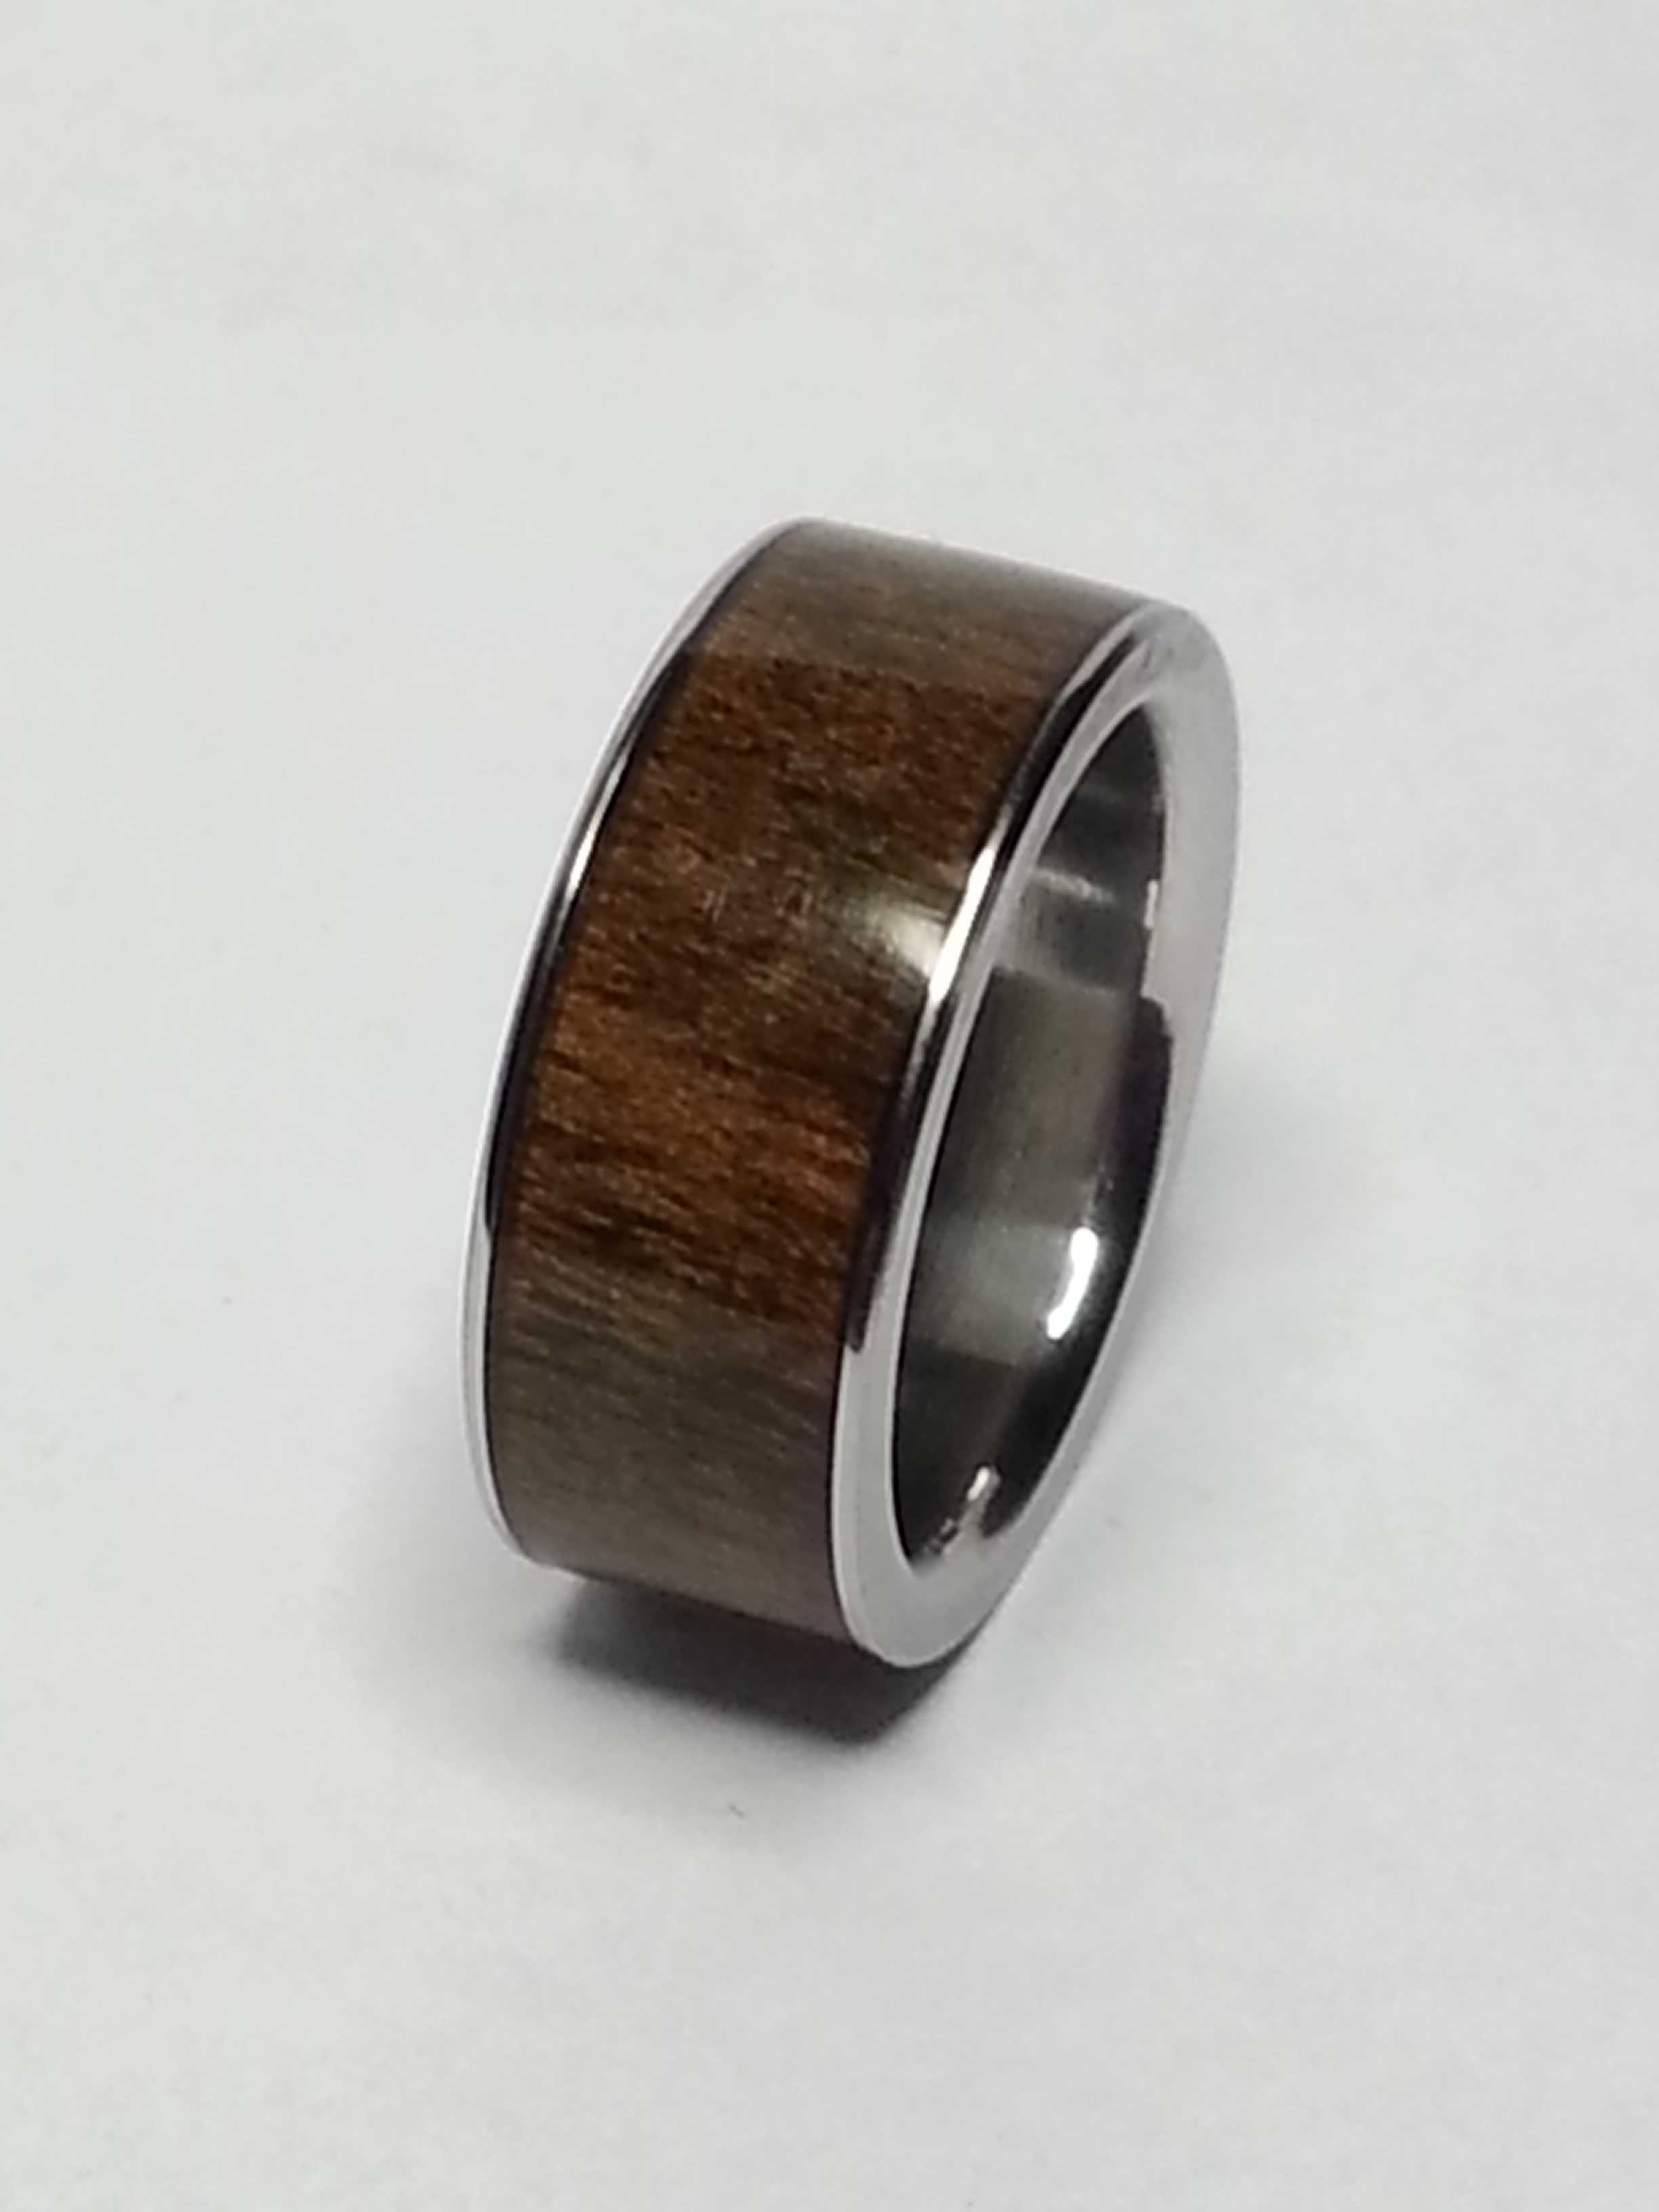 Stainless Steel Ring + American Walnut